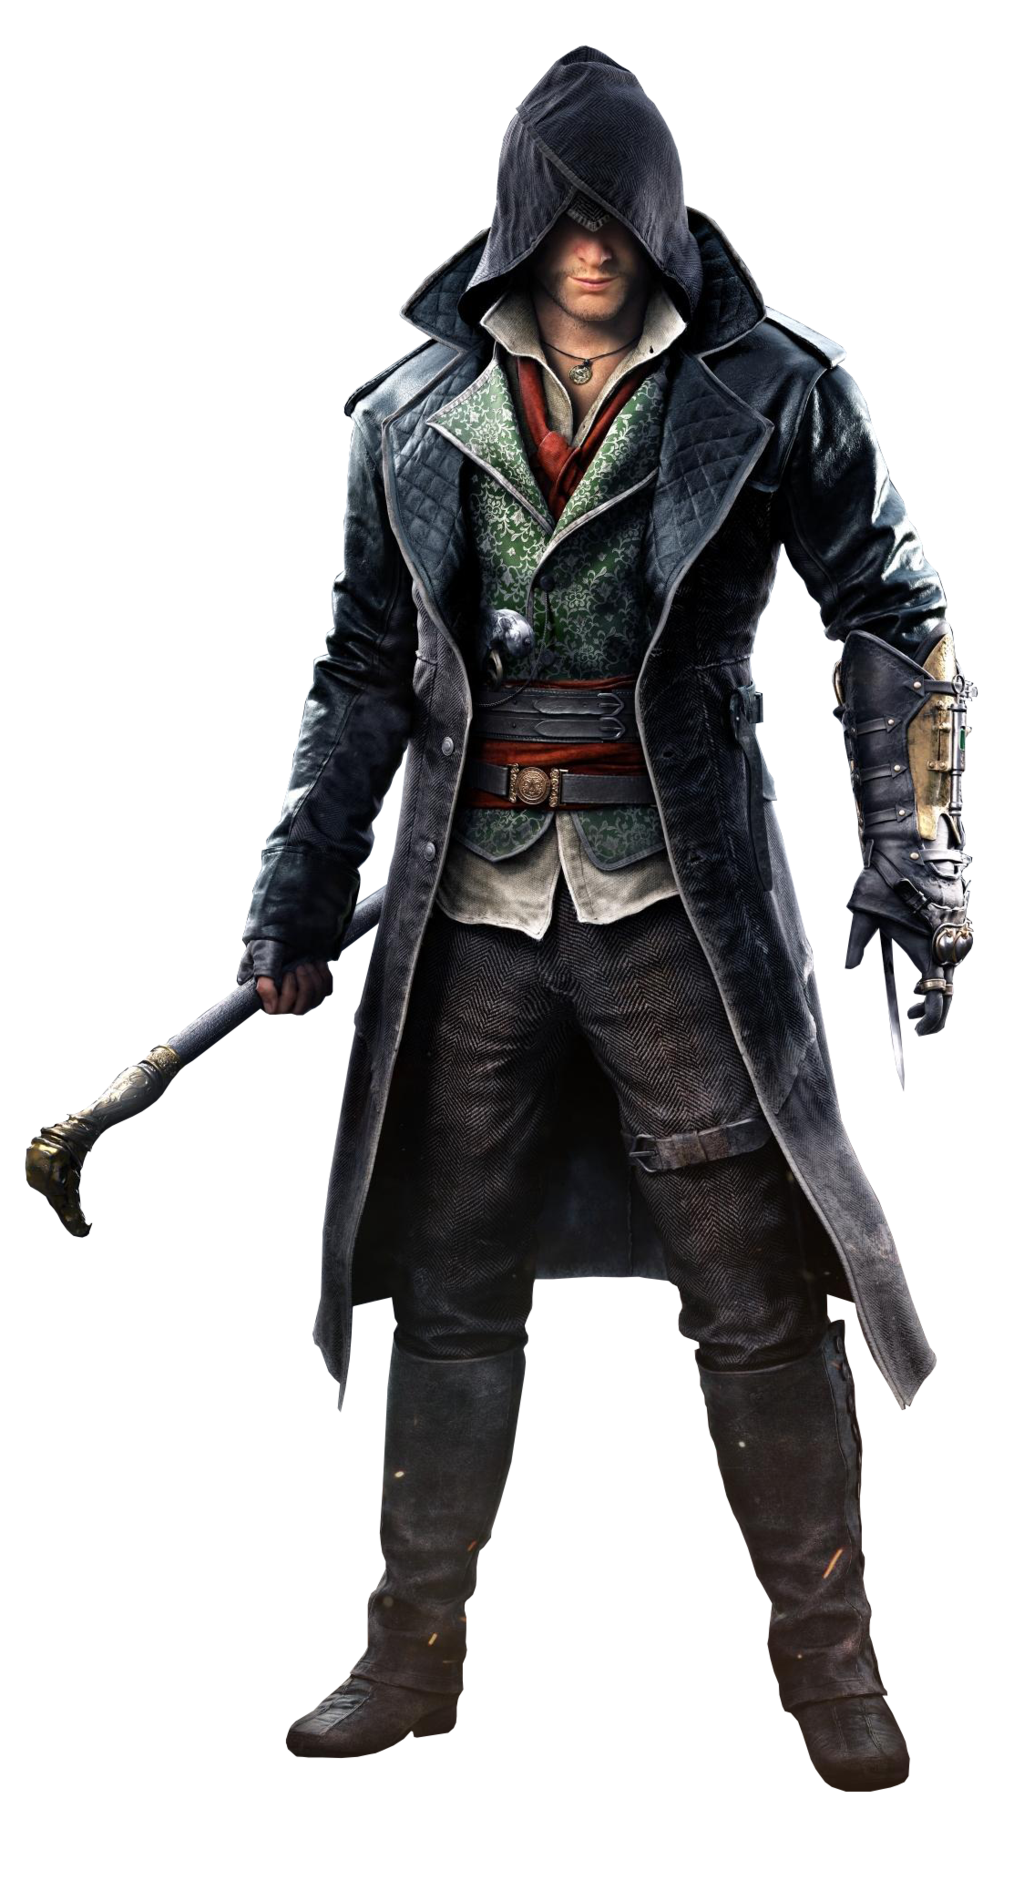 Assassin Creed Syndicate Transparent PNG - Assassins Creed HD PNG